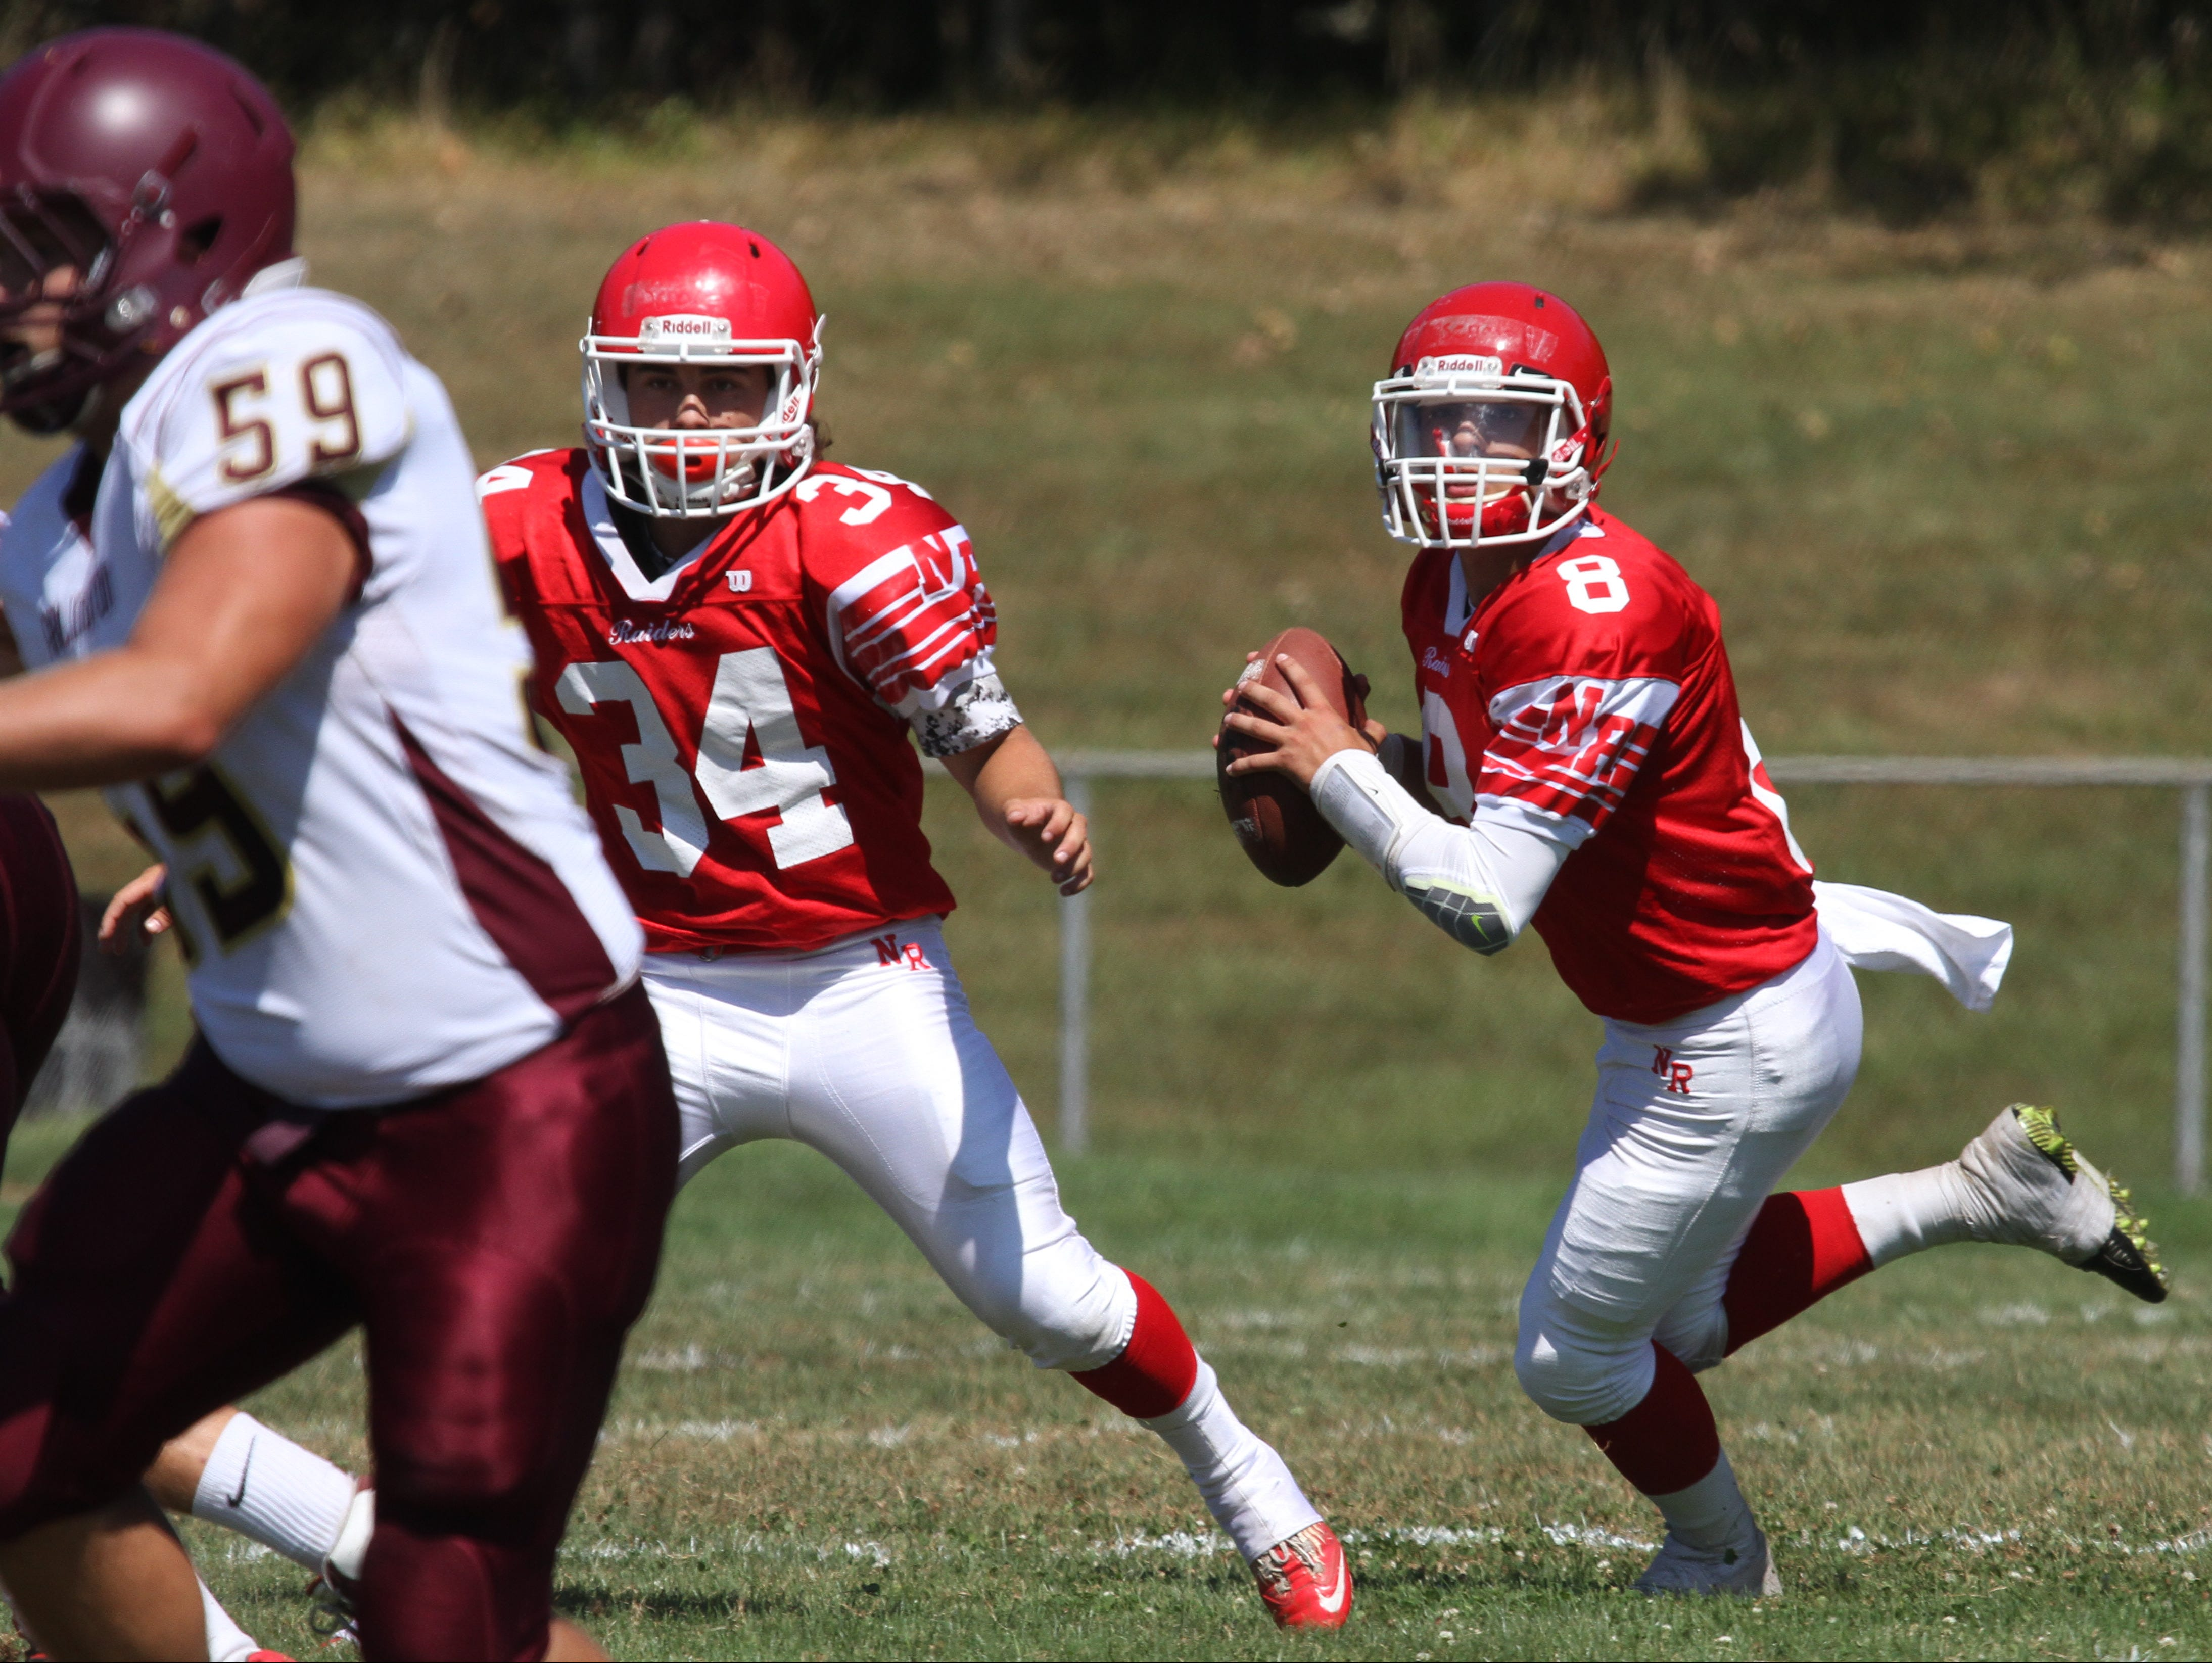 North Rockland quarterback Dylan Senatore looks for an opening during action in the home opener between North Rockland and Arlington at North Rockland High School, Sept. 5, 2015.